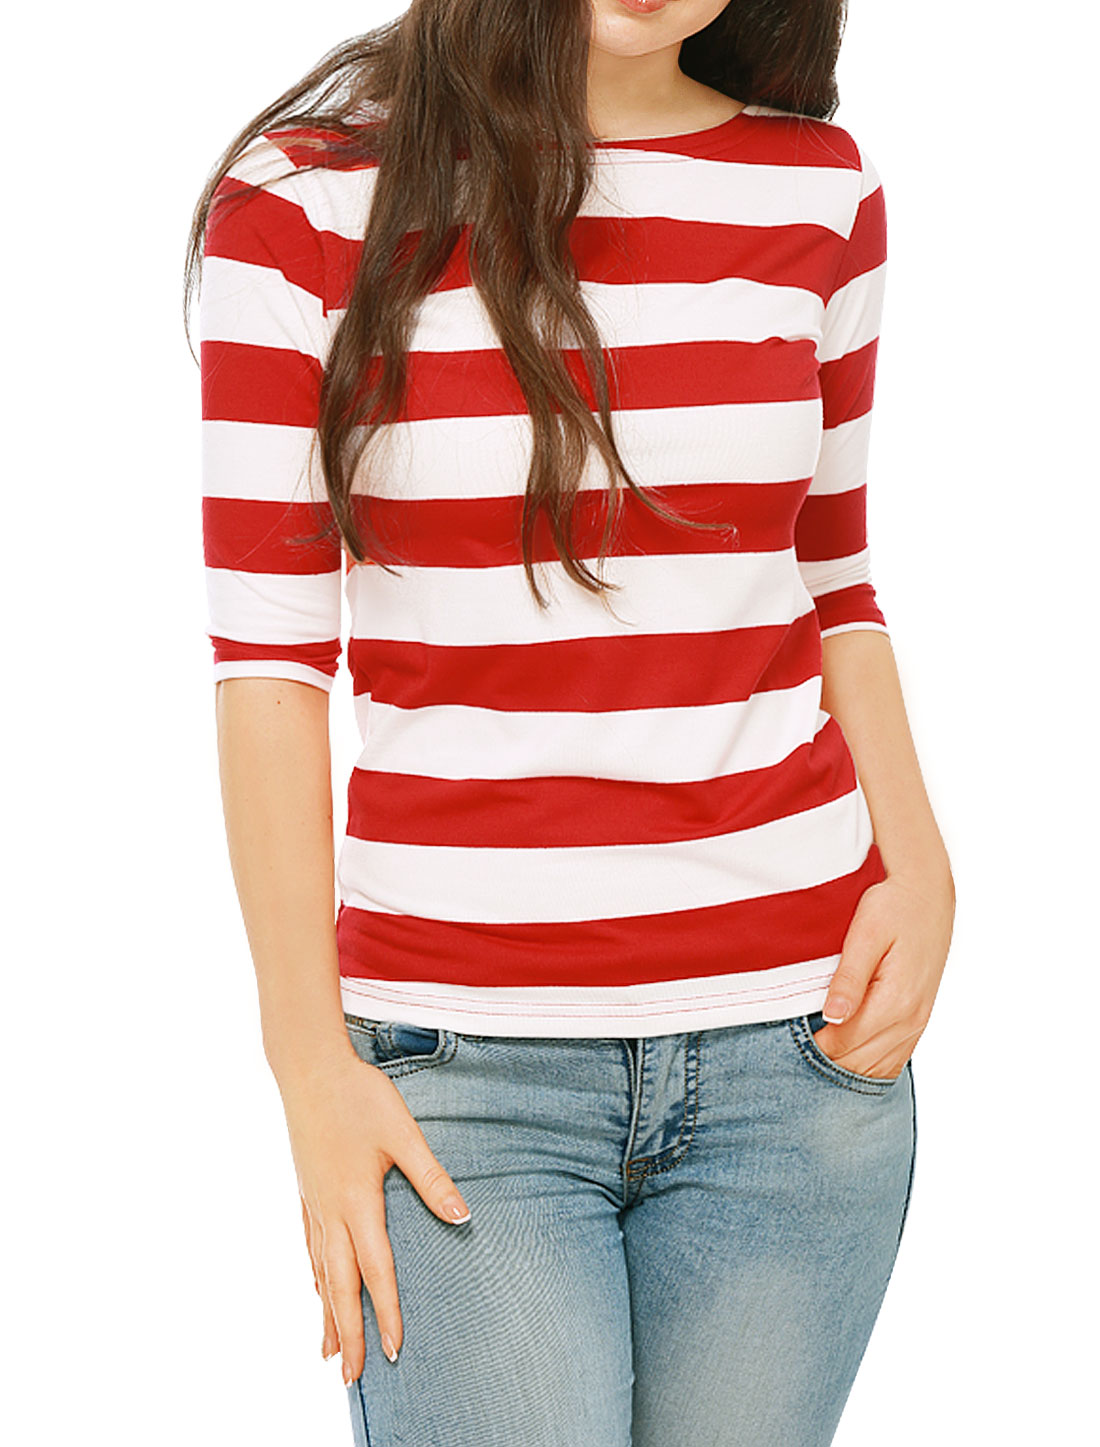 Women Half Sleeves Boat Neck Classic Striped T-shirt Red XL